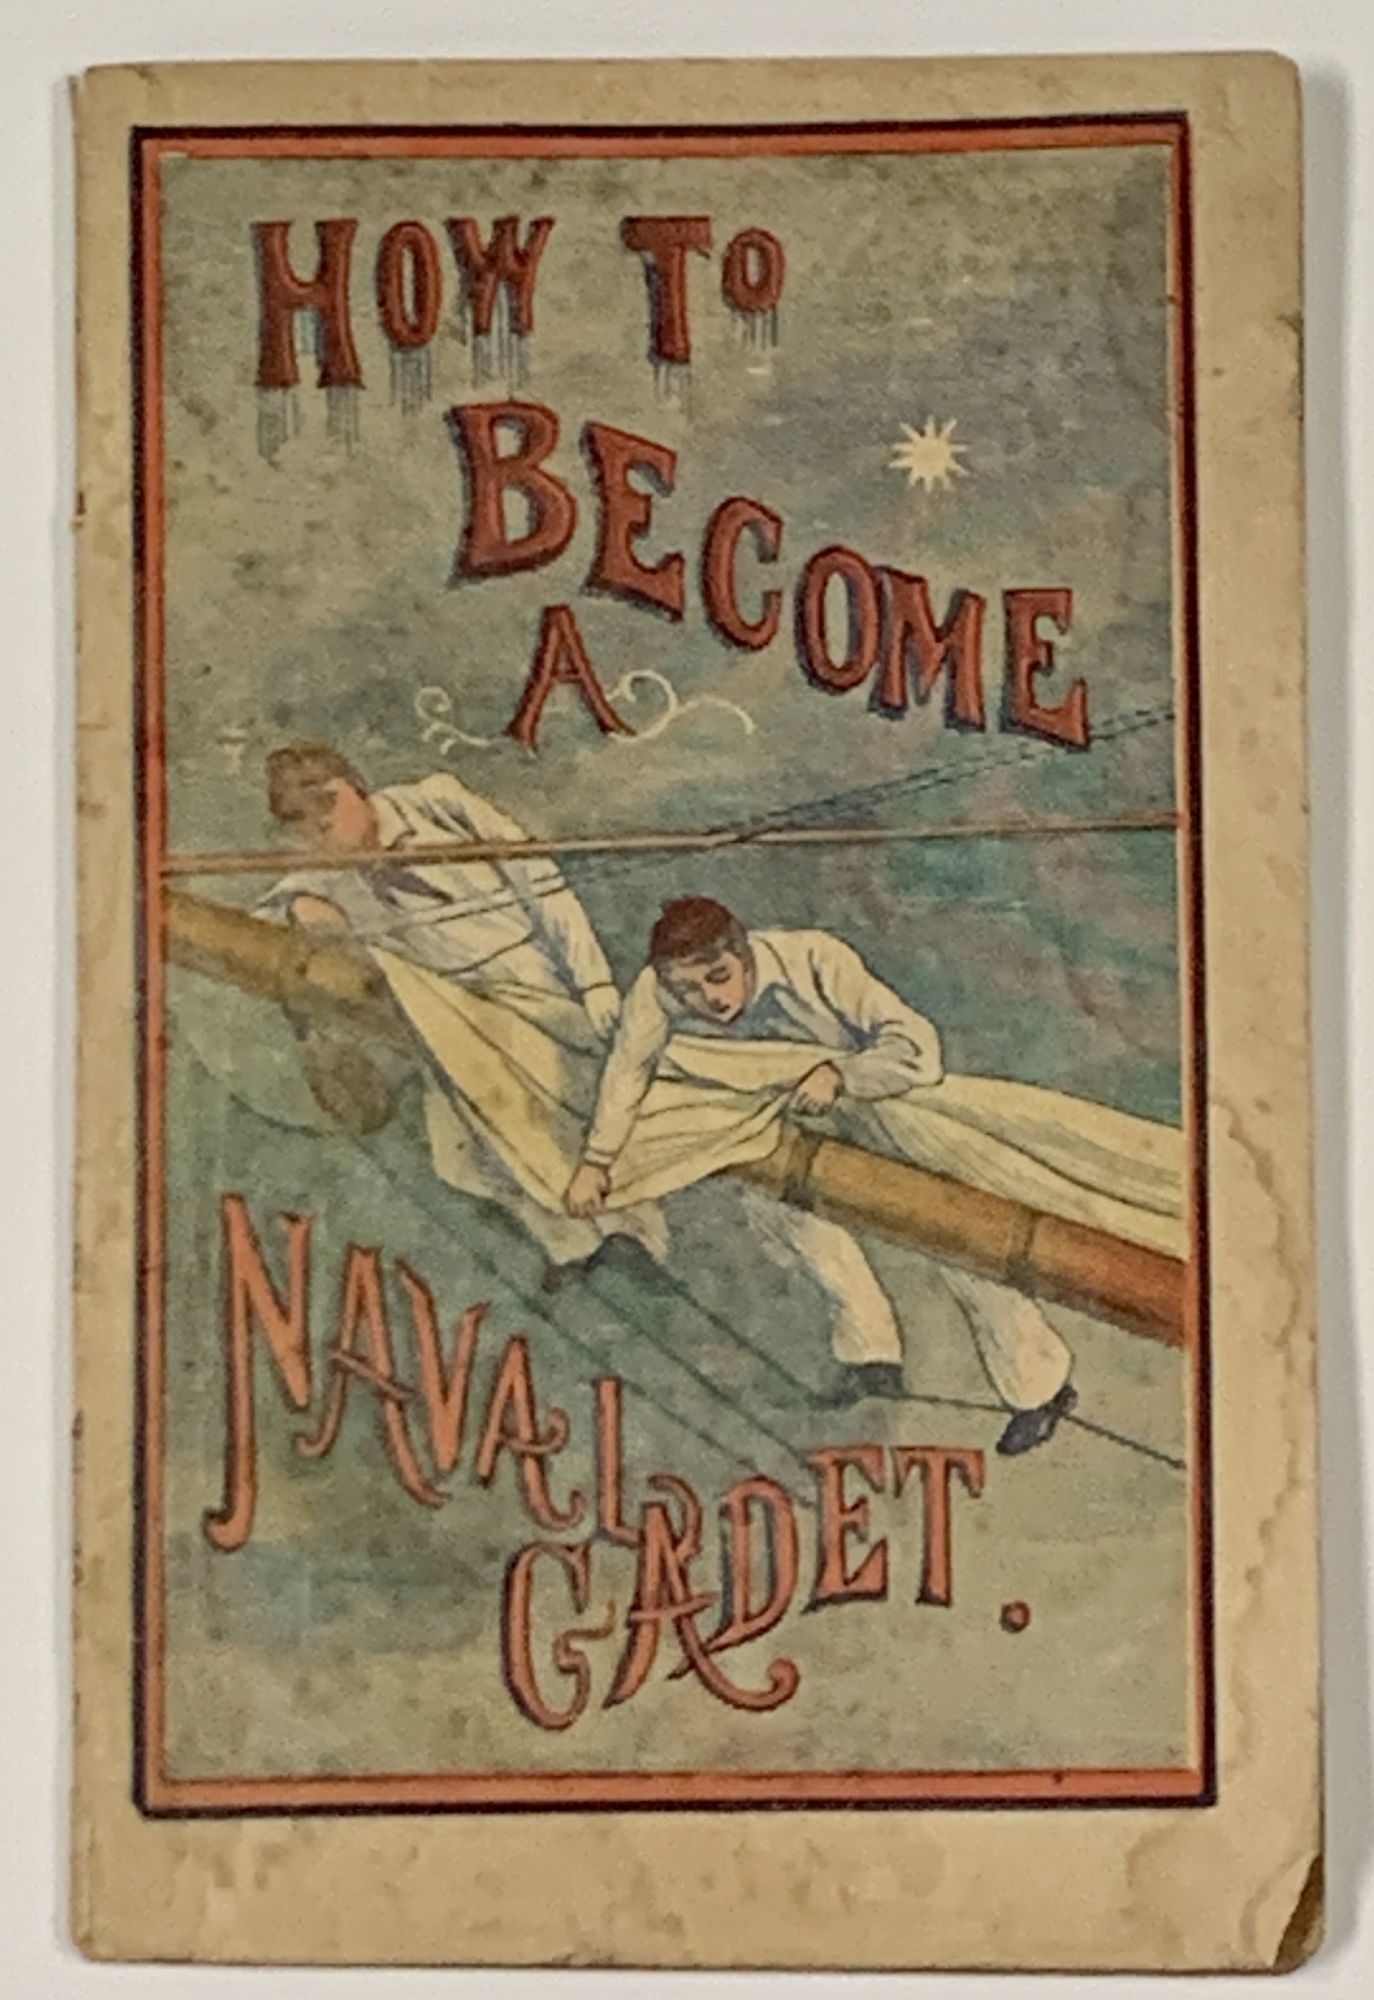 how to Become a Naval Cadet